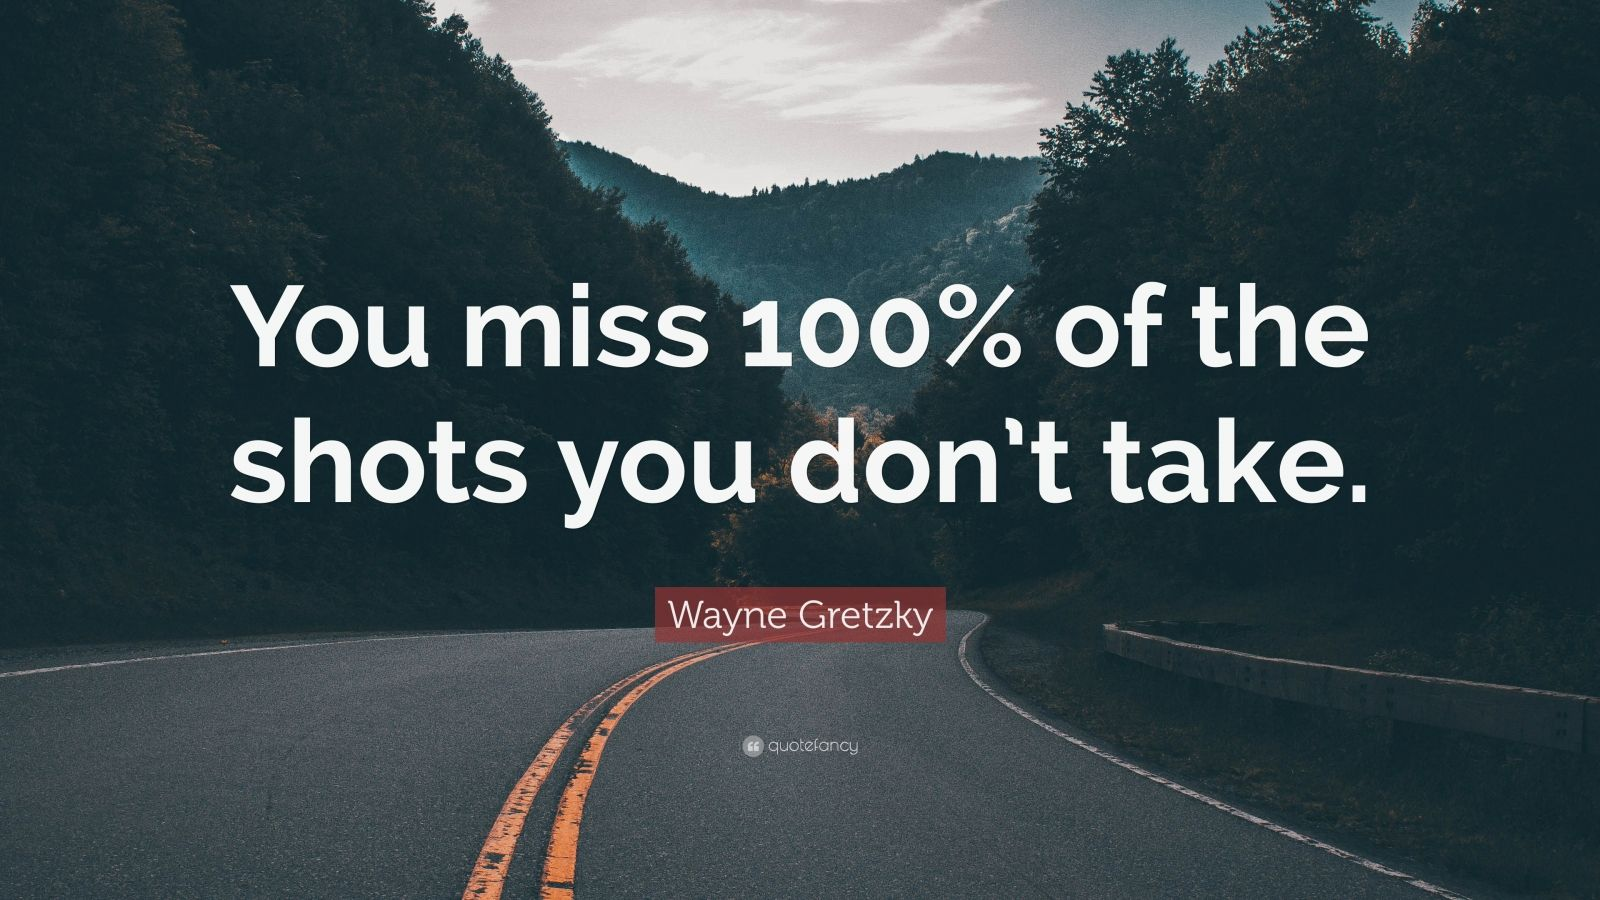 Gary Vaynerchuk Quotes Wallpaper Wayne Gretzky Quote You Miss 100 Of The Shots You Don T